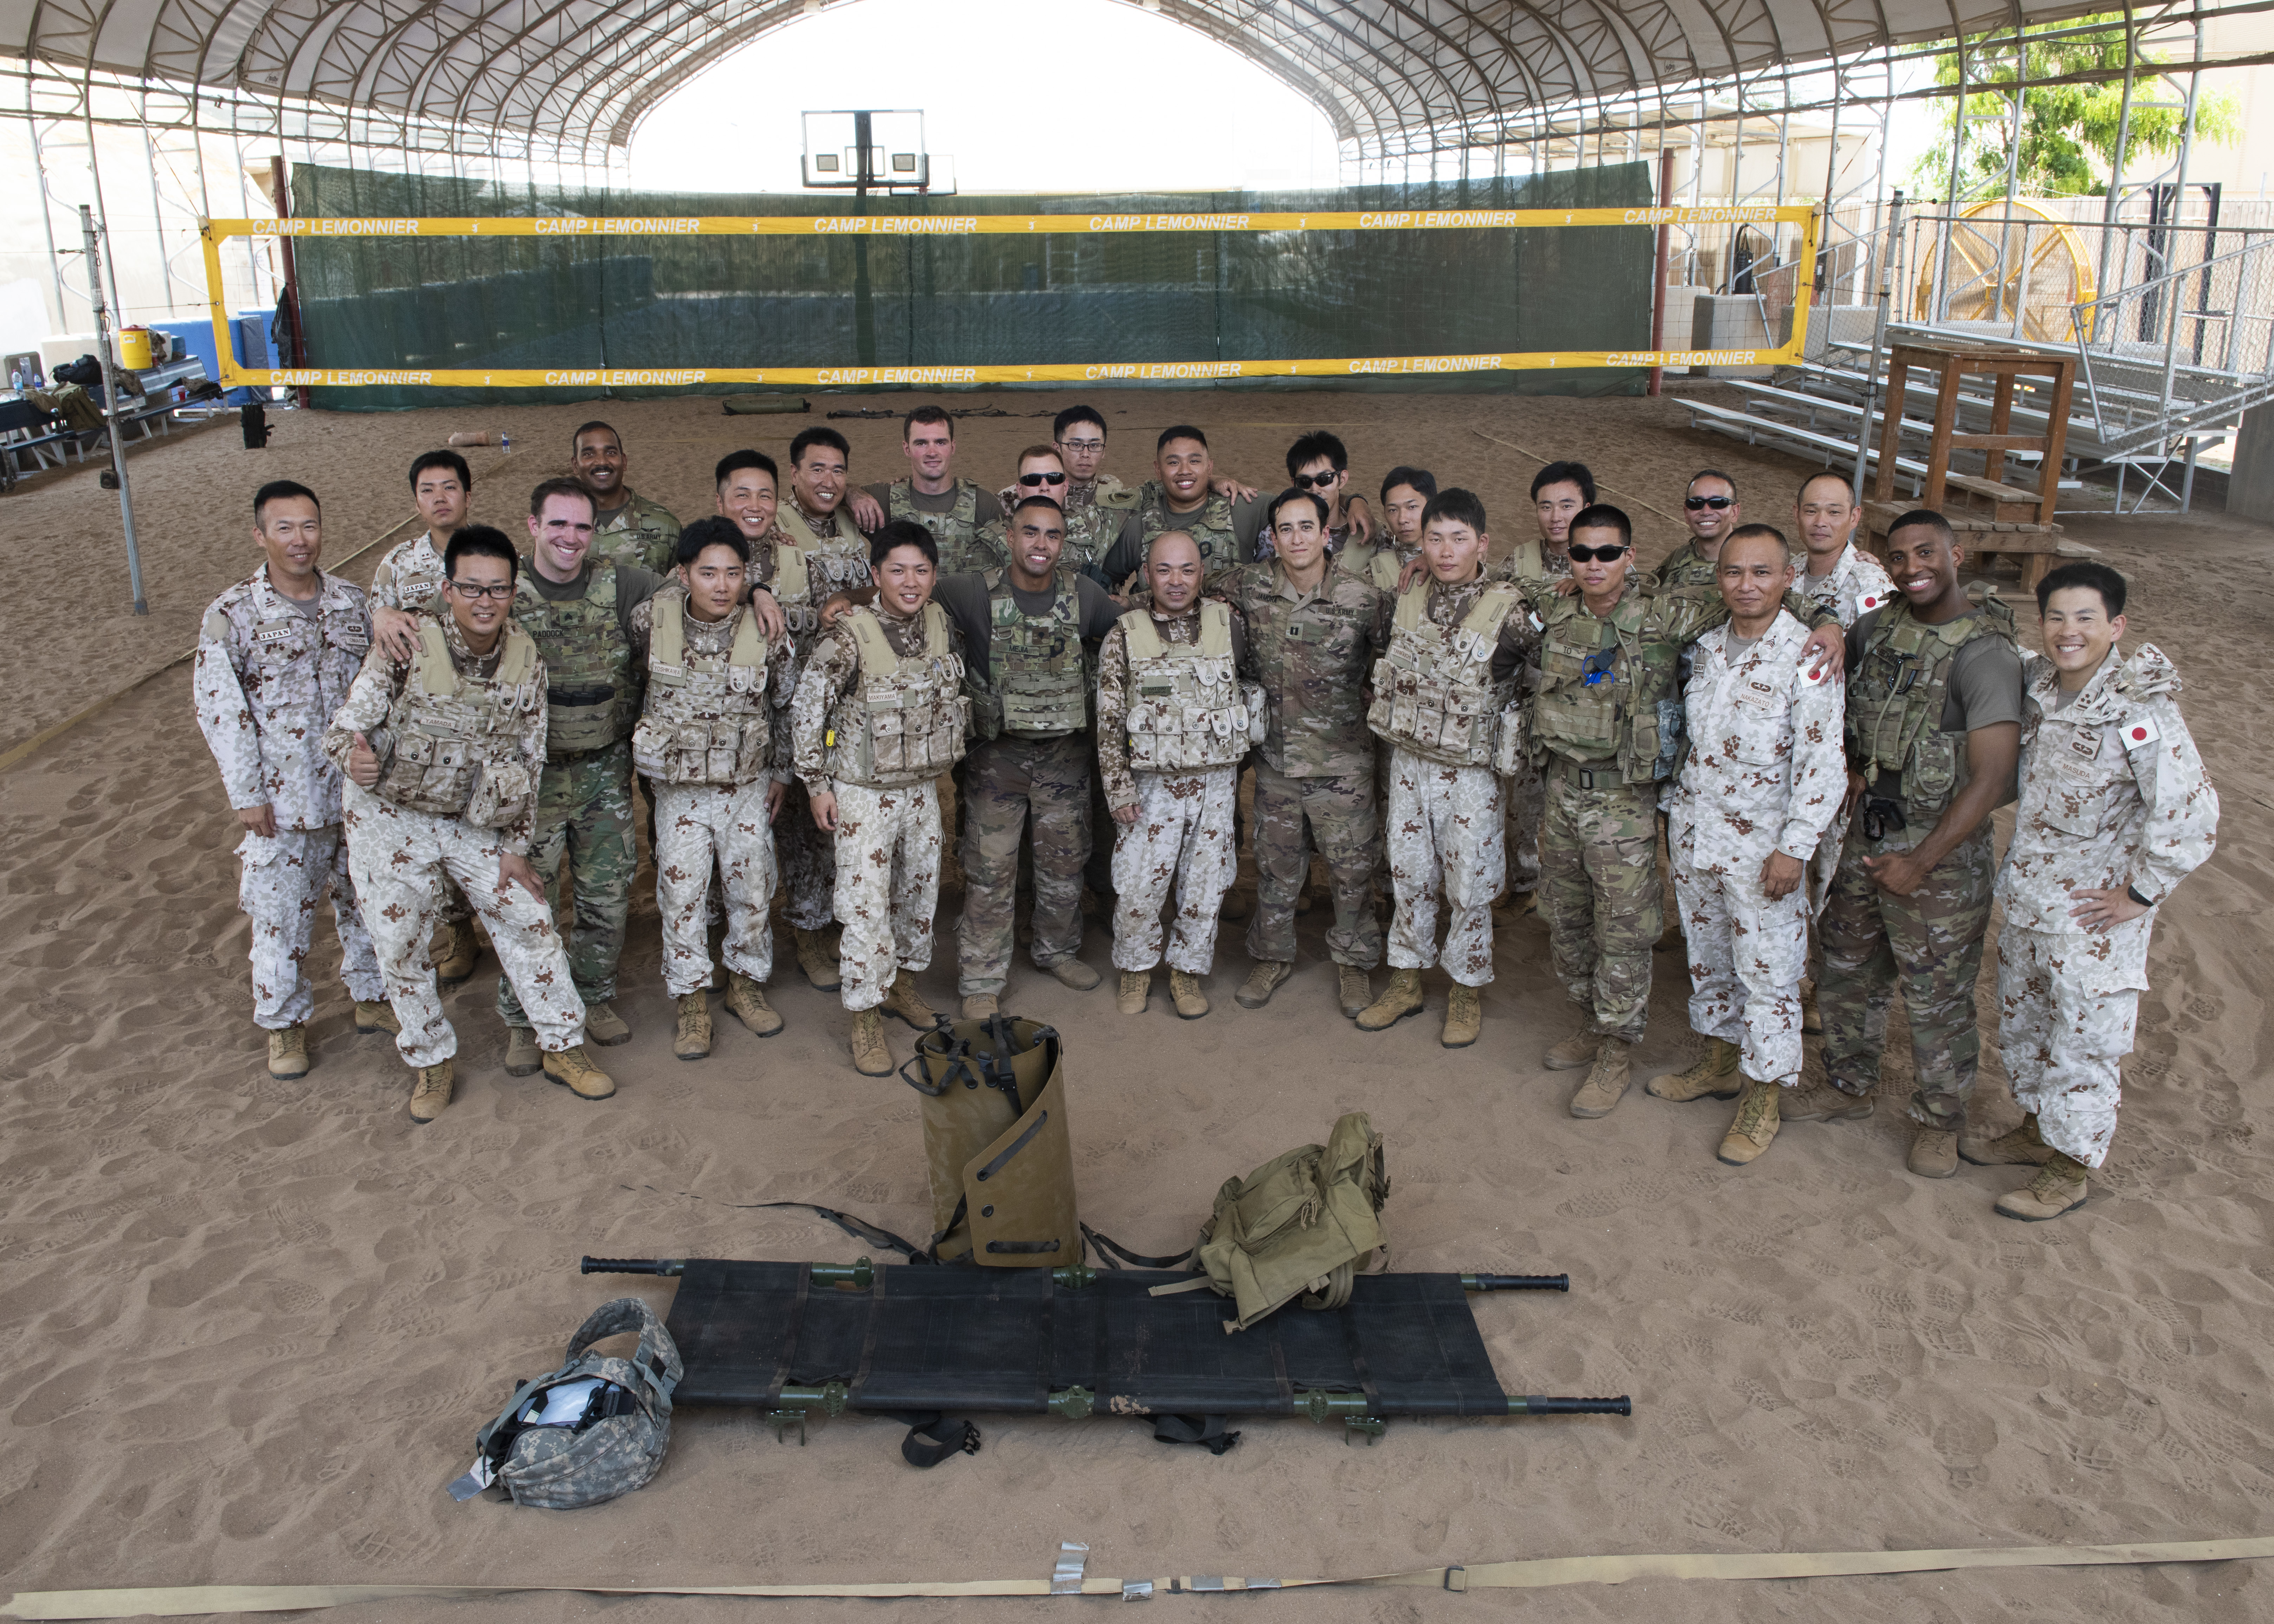 U.S. Army Soldiers assigned to Combined Joint Task Force-Horn of Africa and Japanese Ground Self-Defense Force soldiers pose for a group photo during a tactical combat casualty care course at Camp Lemonnier, Djibouti, June 3, 2019. The course was part of a two-day subject matter expert medical exchange that focused on first-aid methodologies between the two partner nations in Djibouti. (U.S. Air Force photo by Staff Sgt. Franklin R. Ramos)